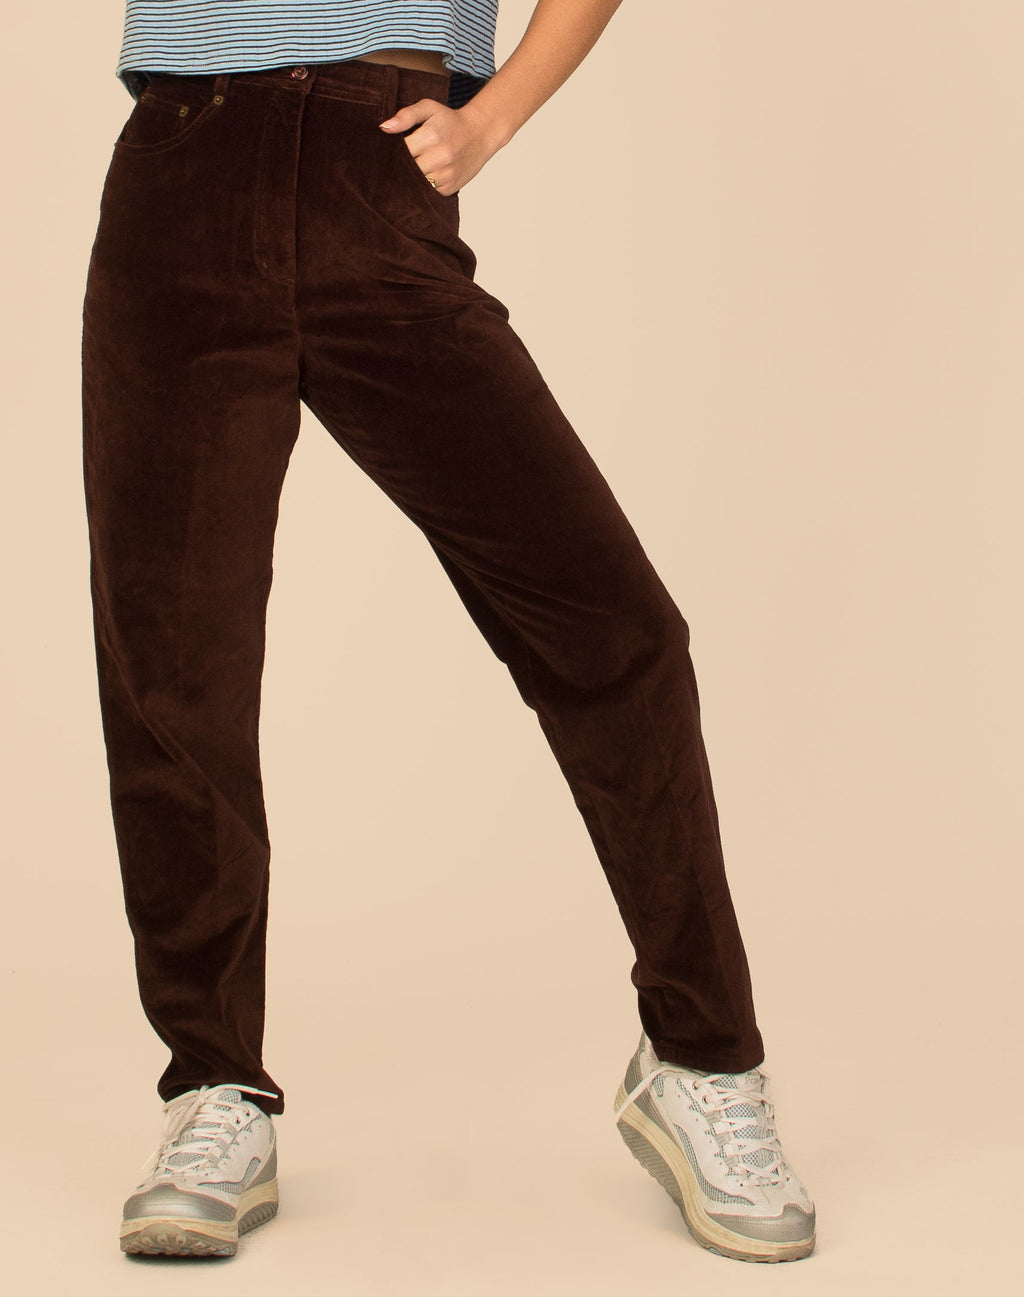 BROWN HIGH WAIST VELVET JEANS